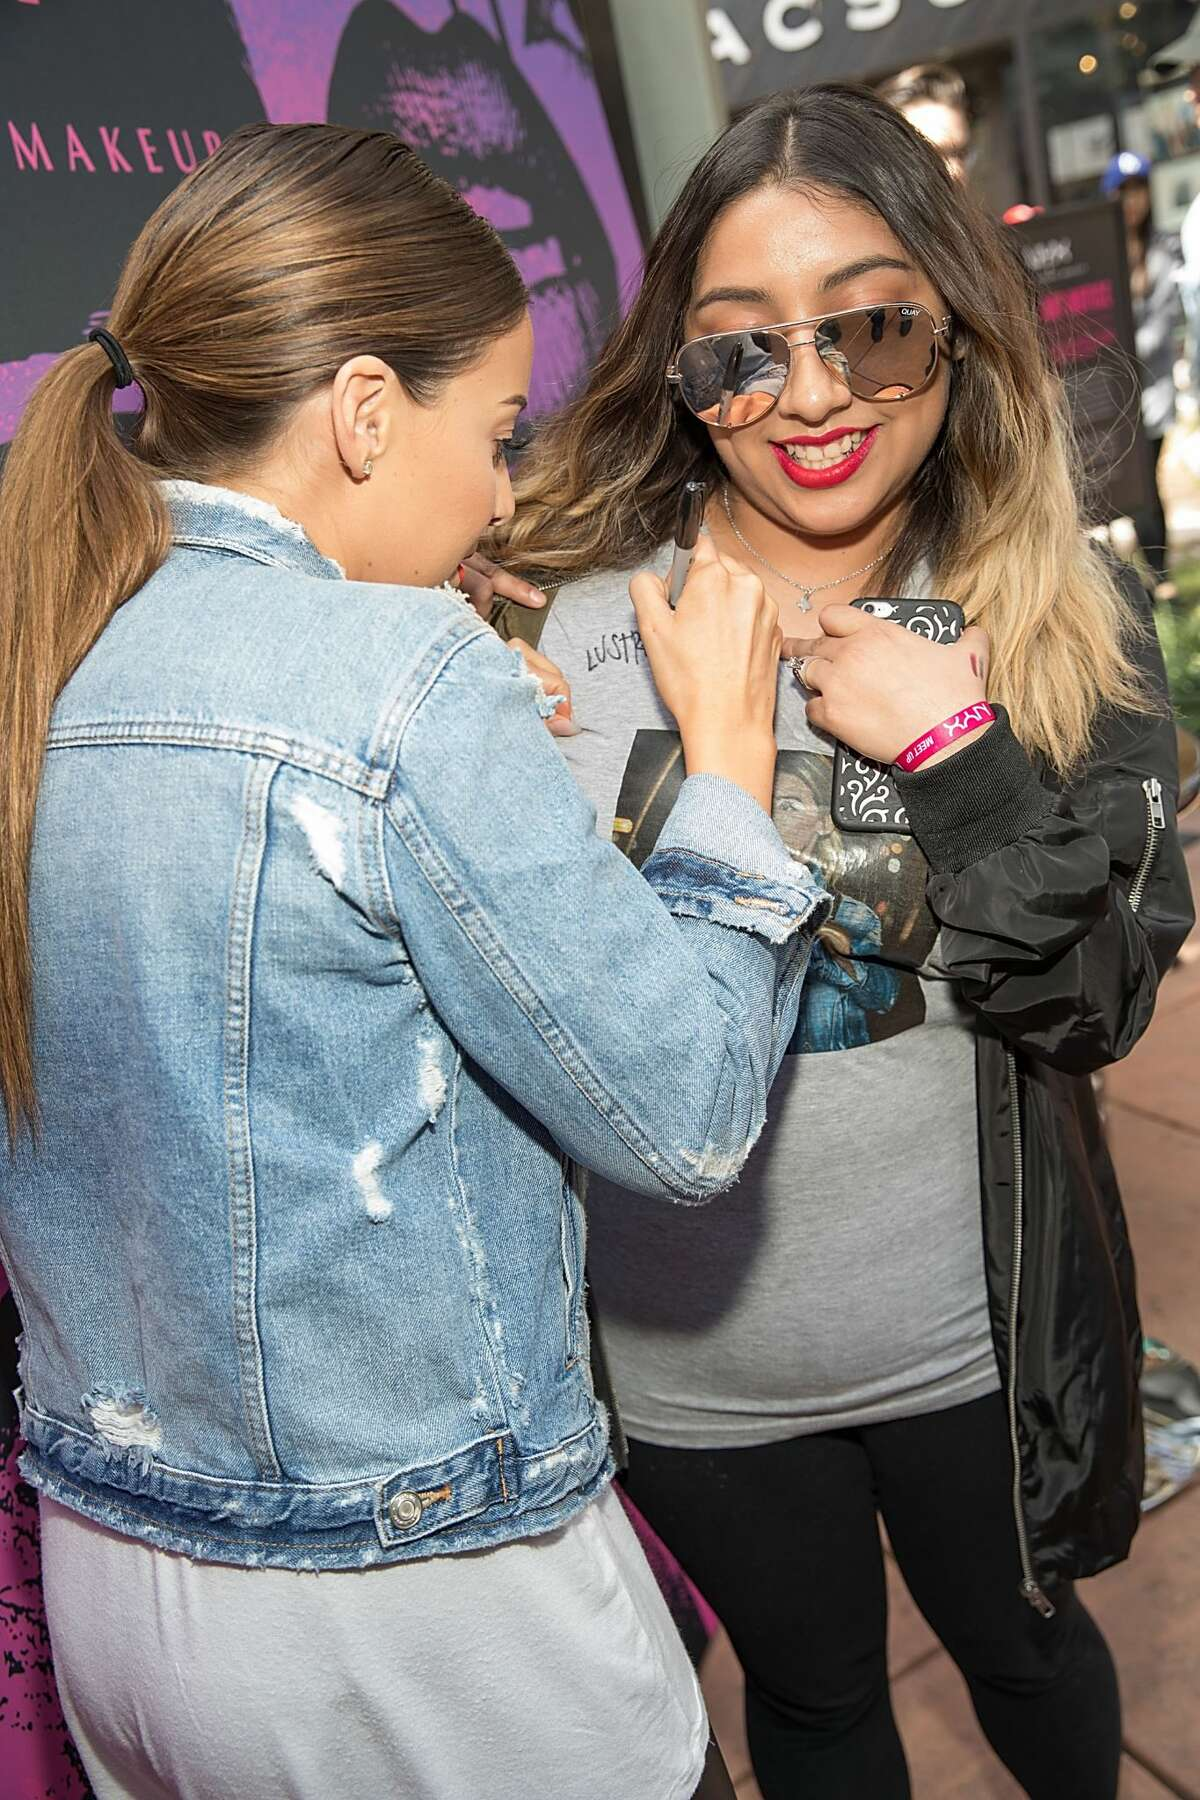 SAN ANTONIO, TX - FEBRUARY 25: Lustrelux @lustrelux (L) greets fans during the NYX Professional Makeup Store Grand Opening Meet & Greet at The Shops at La Cantera on February 25, 2017 in San Antonio, Texas. (Photo by Rick Kern/Getty Images for NYX Professional Makeup)